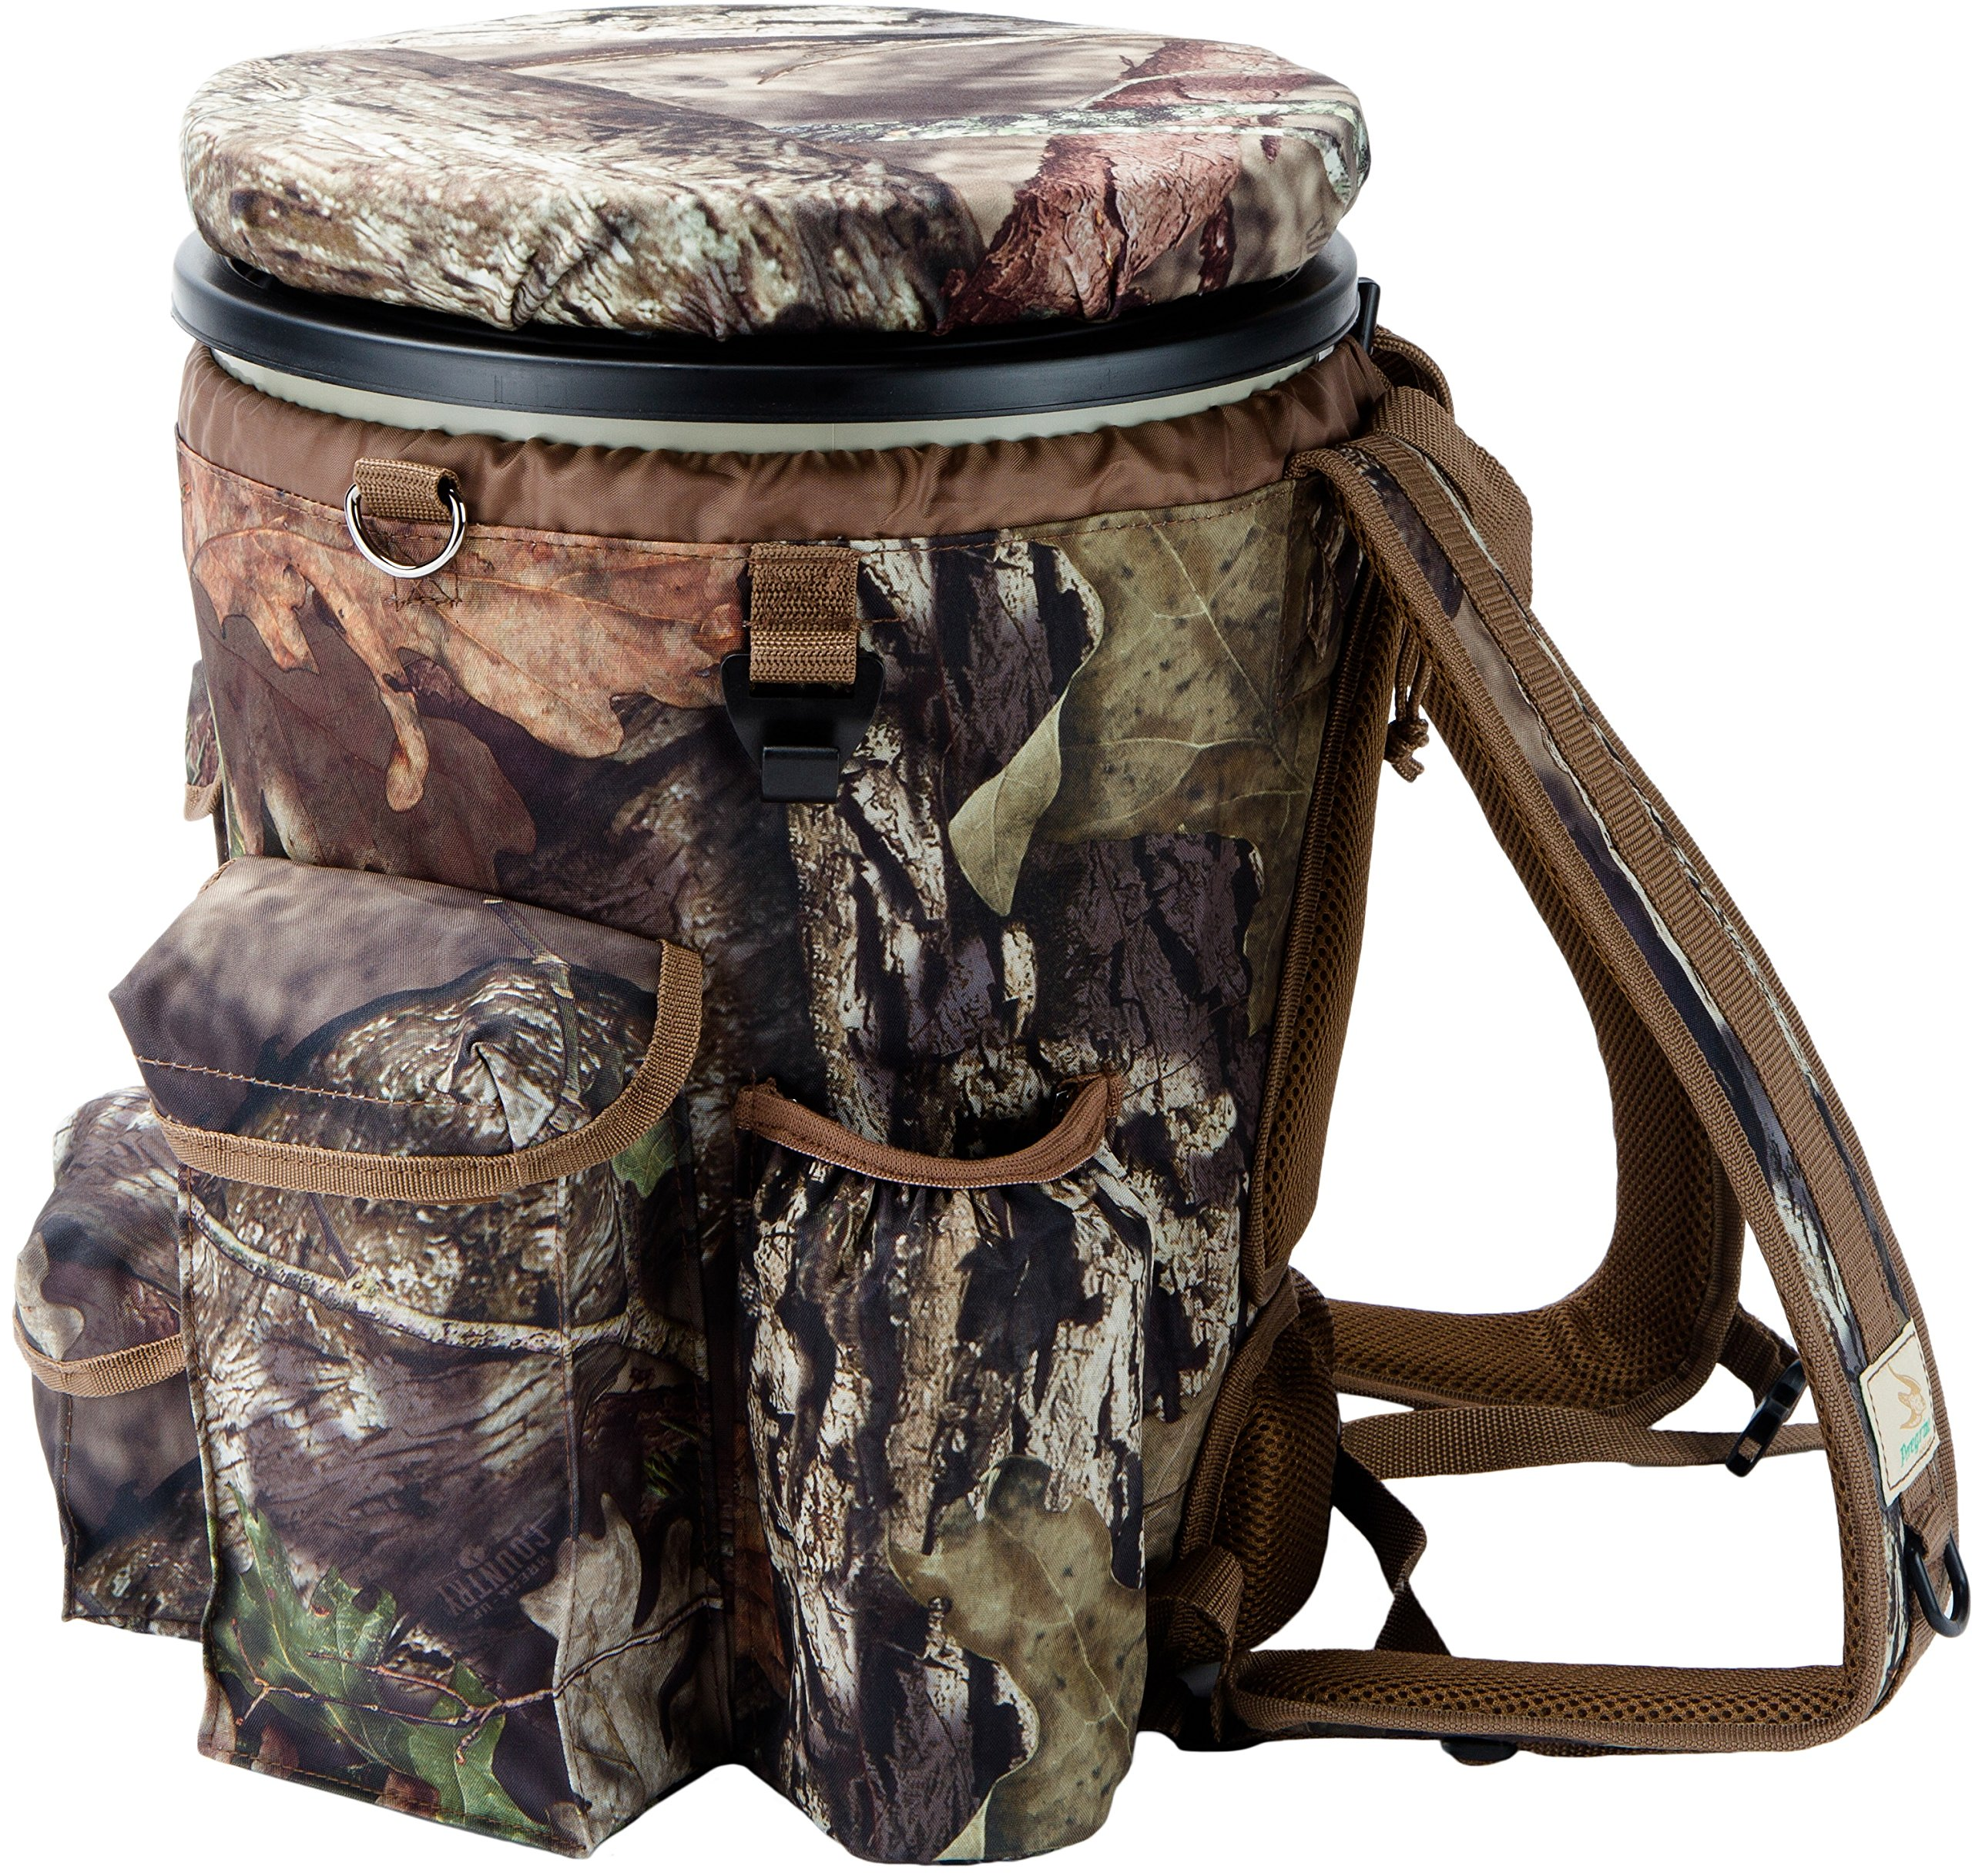 Peregrine Venture Bucket Pack Field Gear Venture Bucket Pack in Break-Up Country, 5 gallon by Peregrine (Image #2)